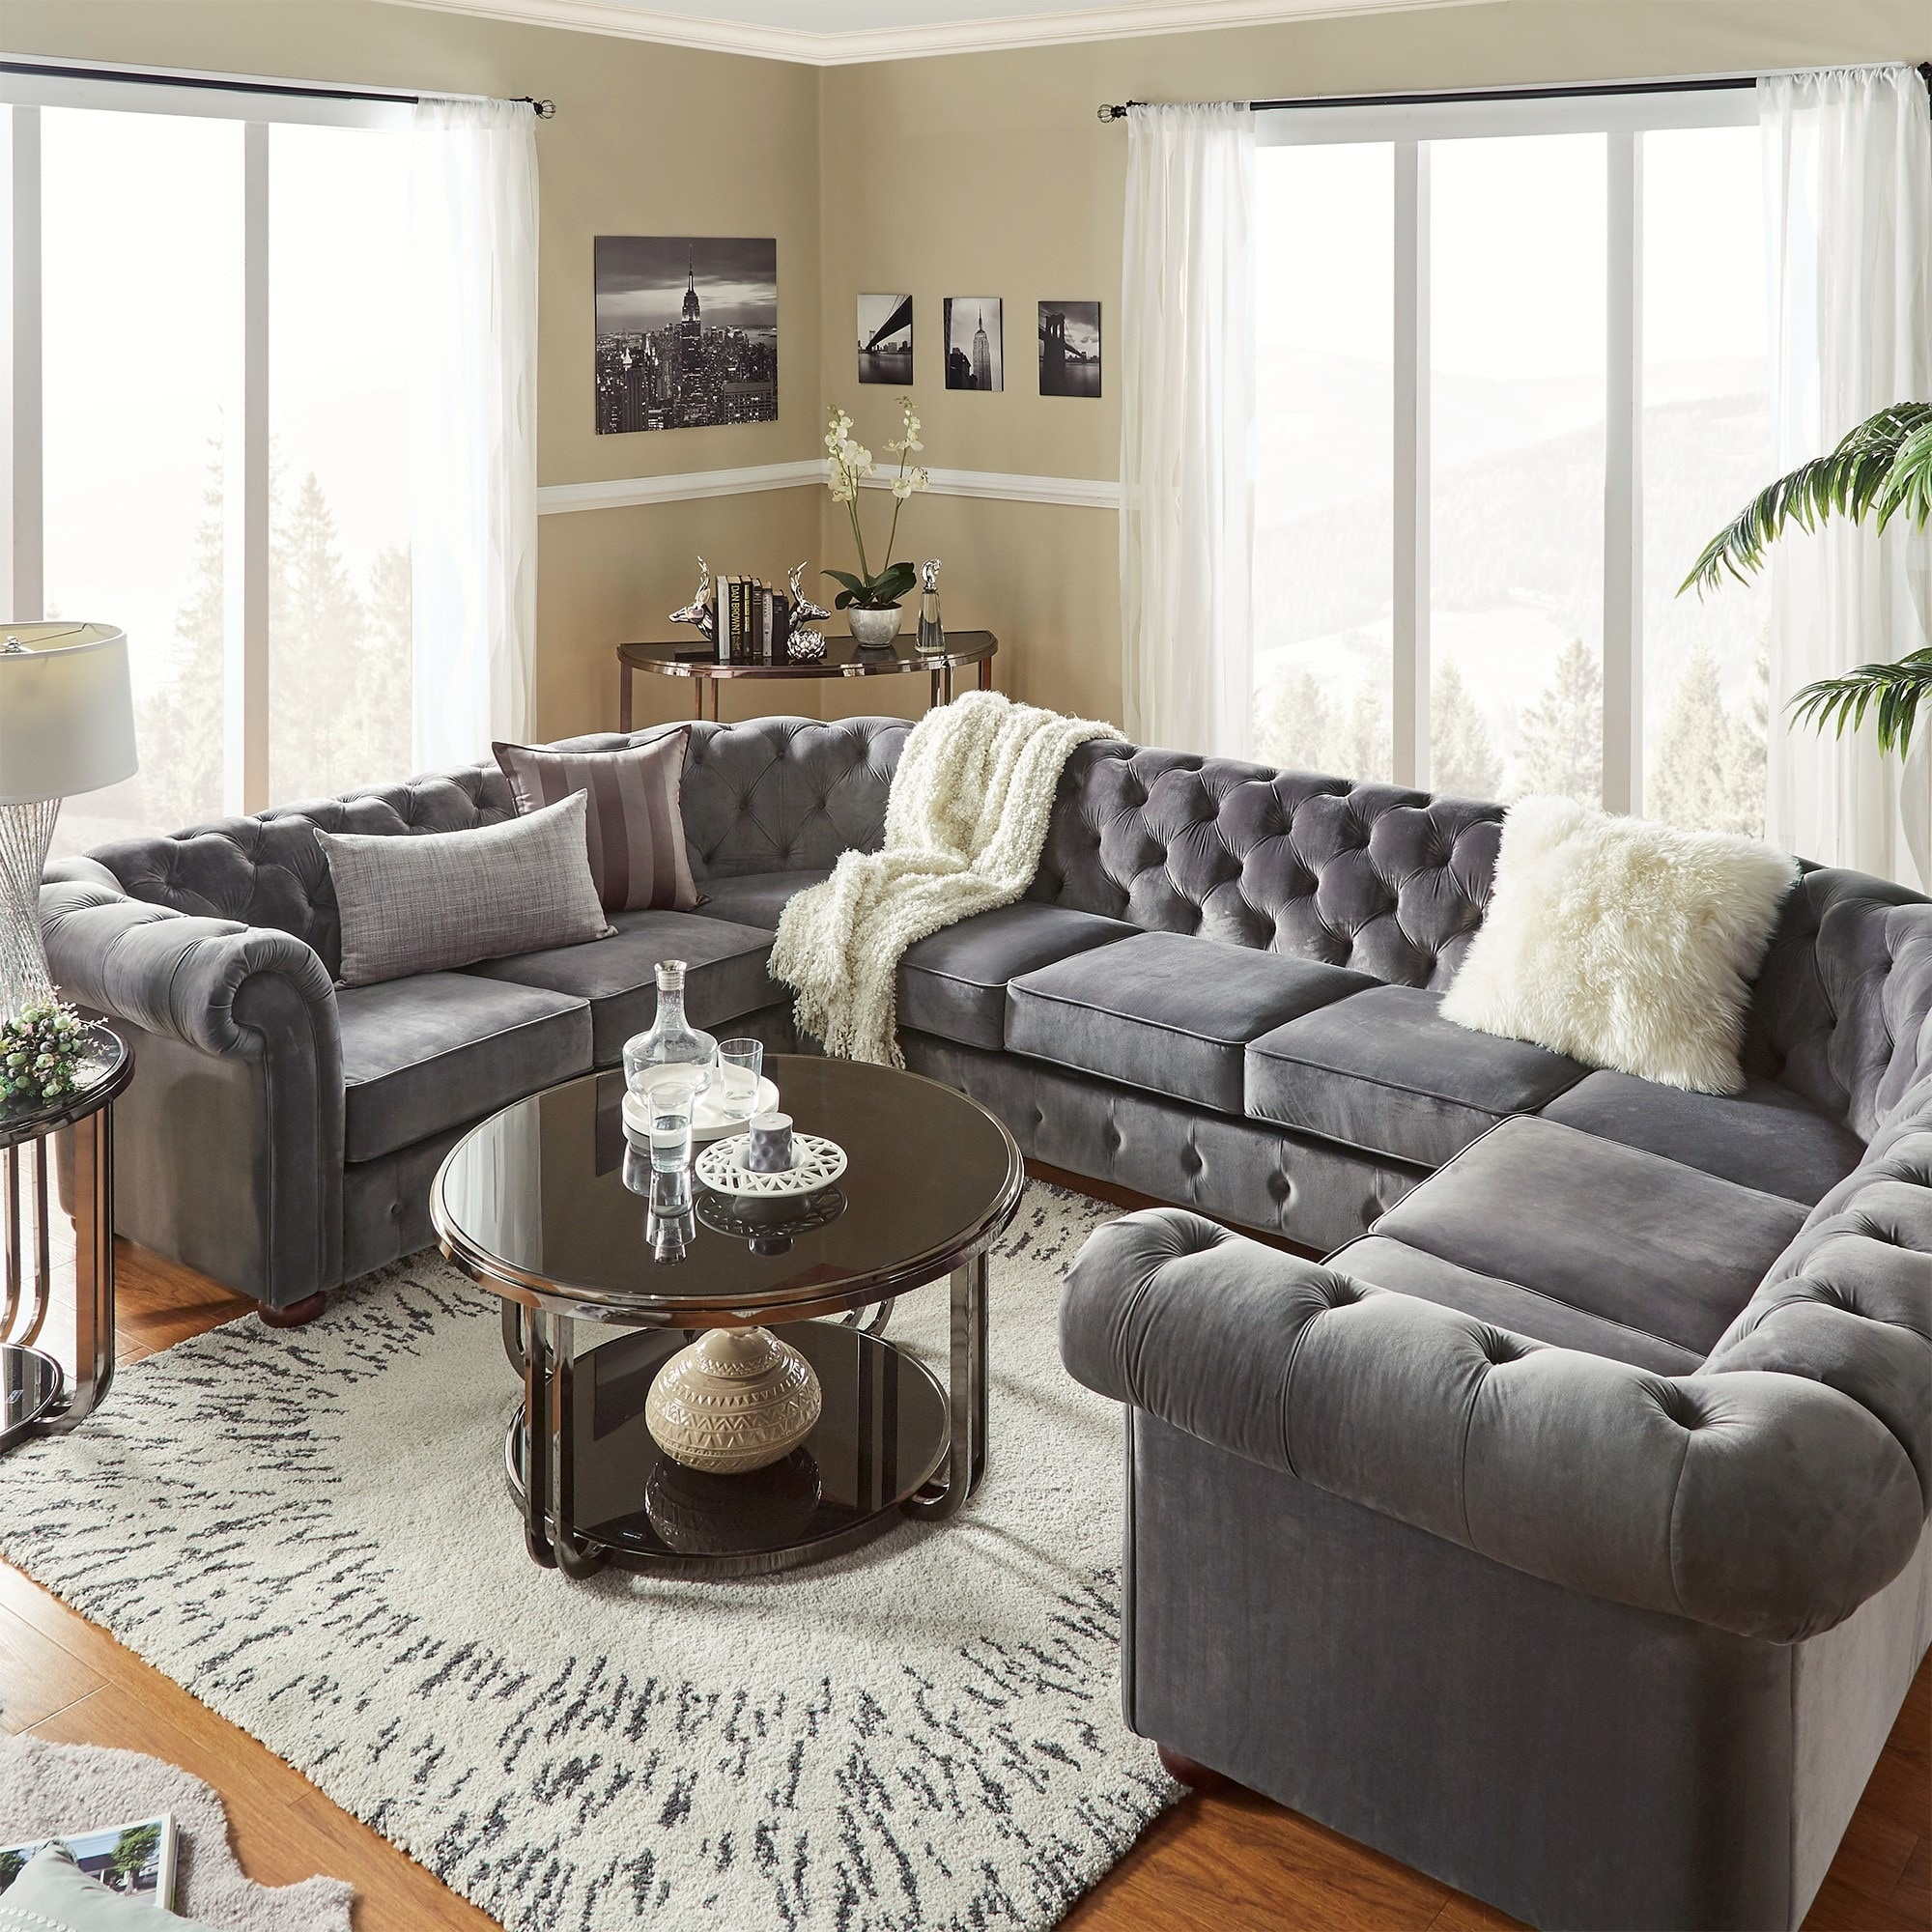 U Couch Knightsbridge Tufted Scroll Arm Chesterfield 9 Seat U Shaped Sectional By Inspire Q Artisan